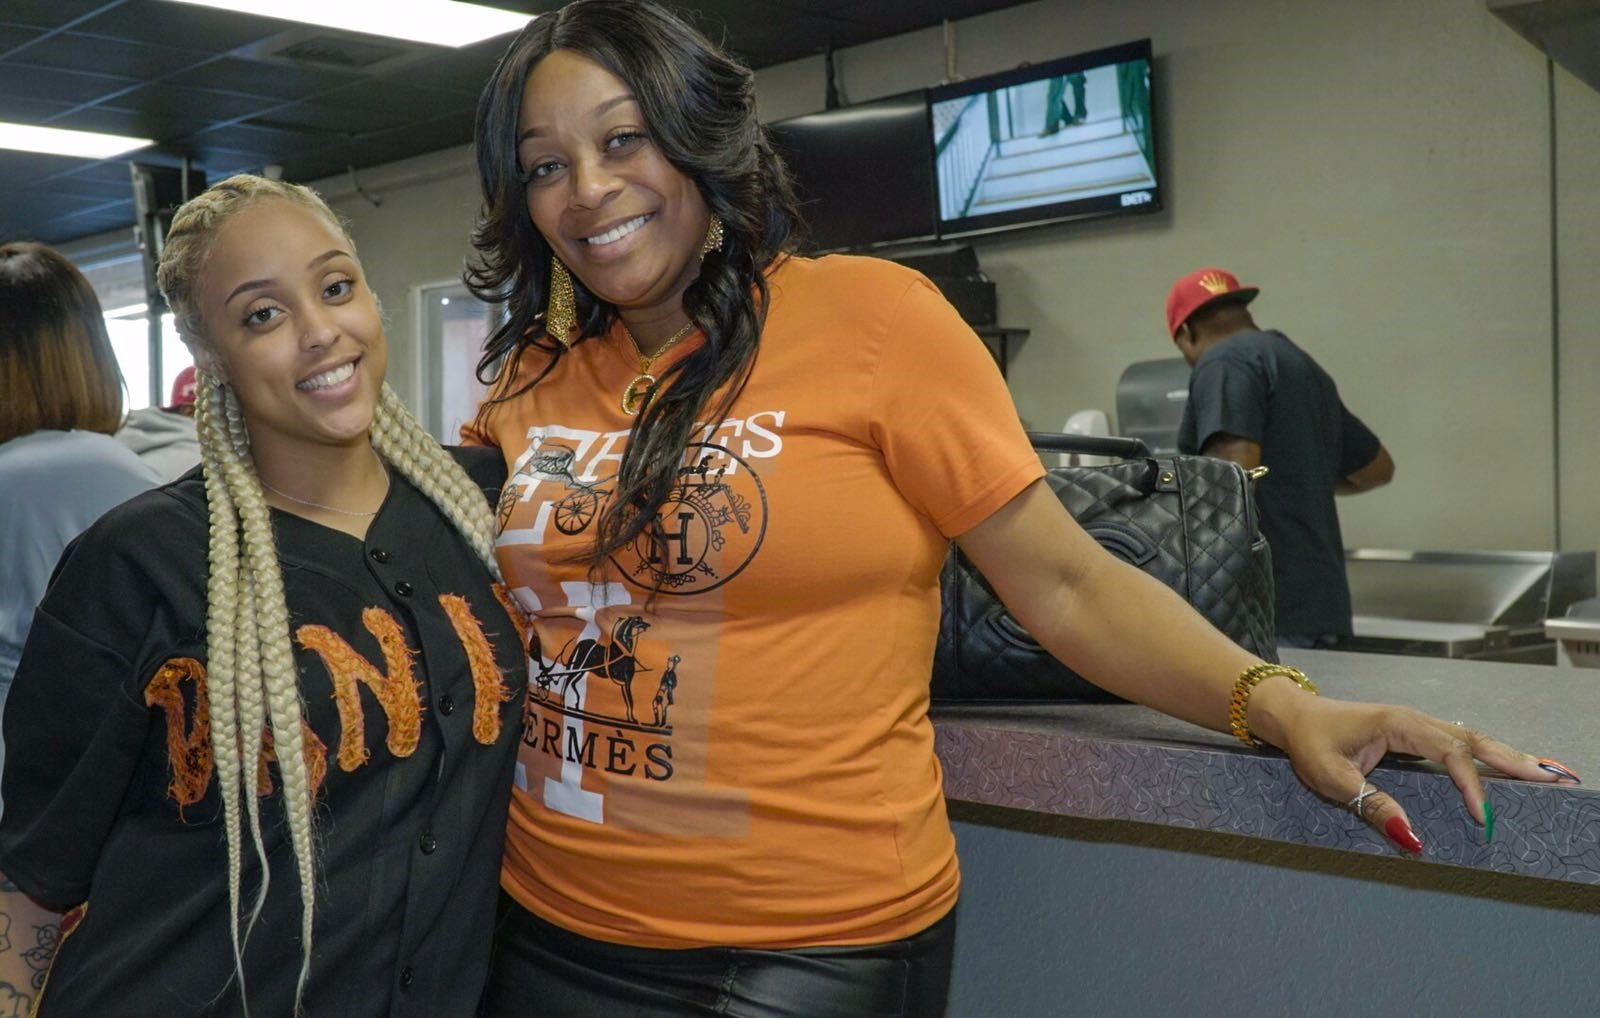 Two women posing for photo at service counter